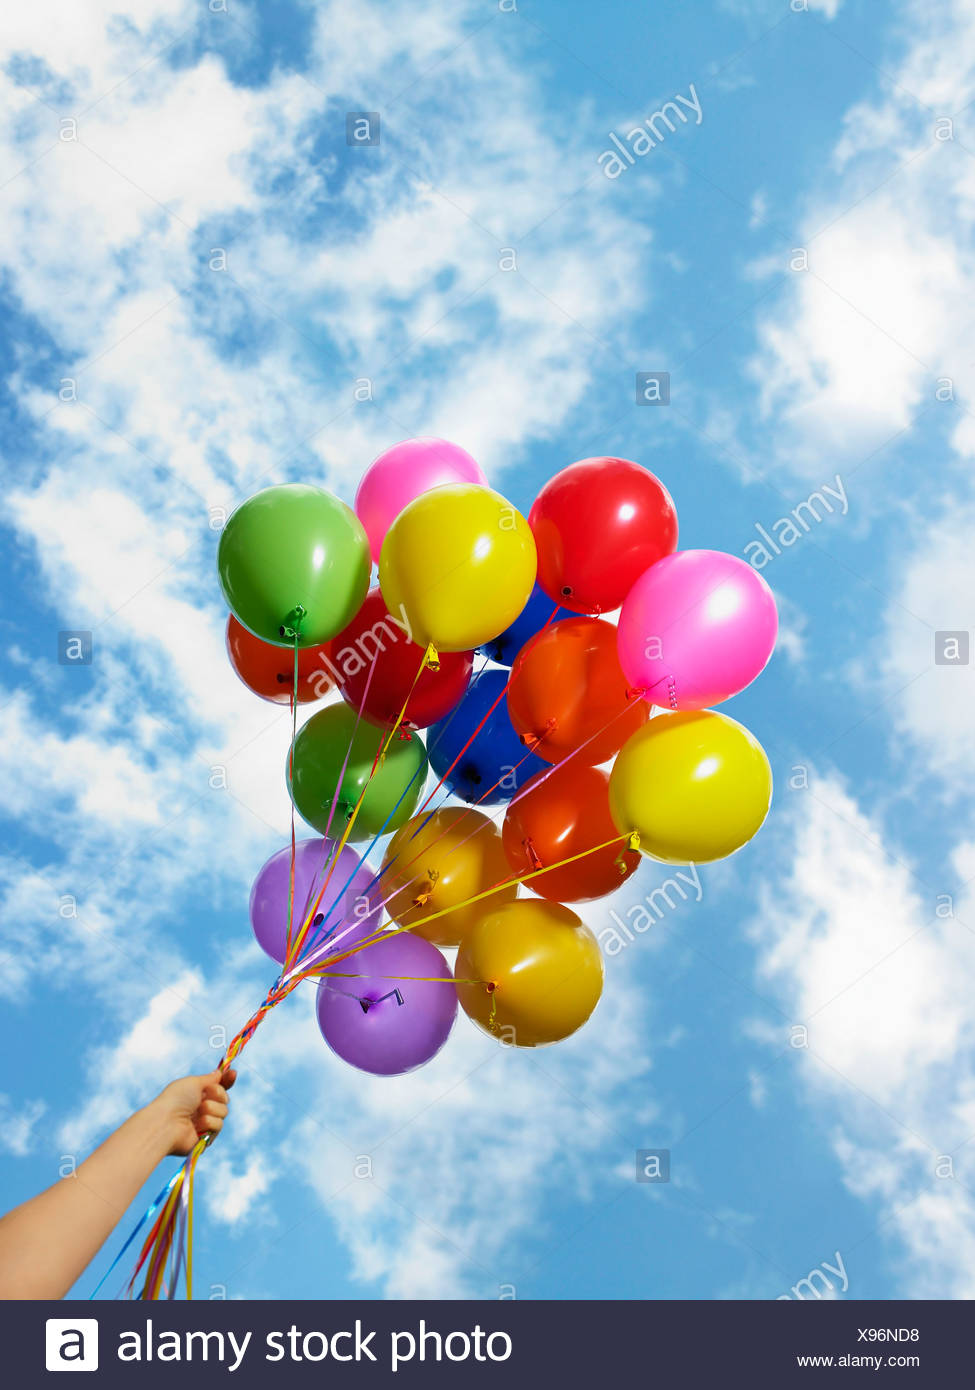 Hand holding colorful balloons - Stock Image